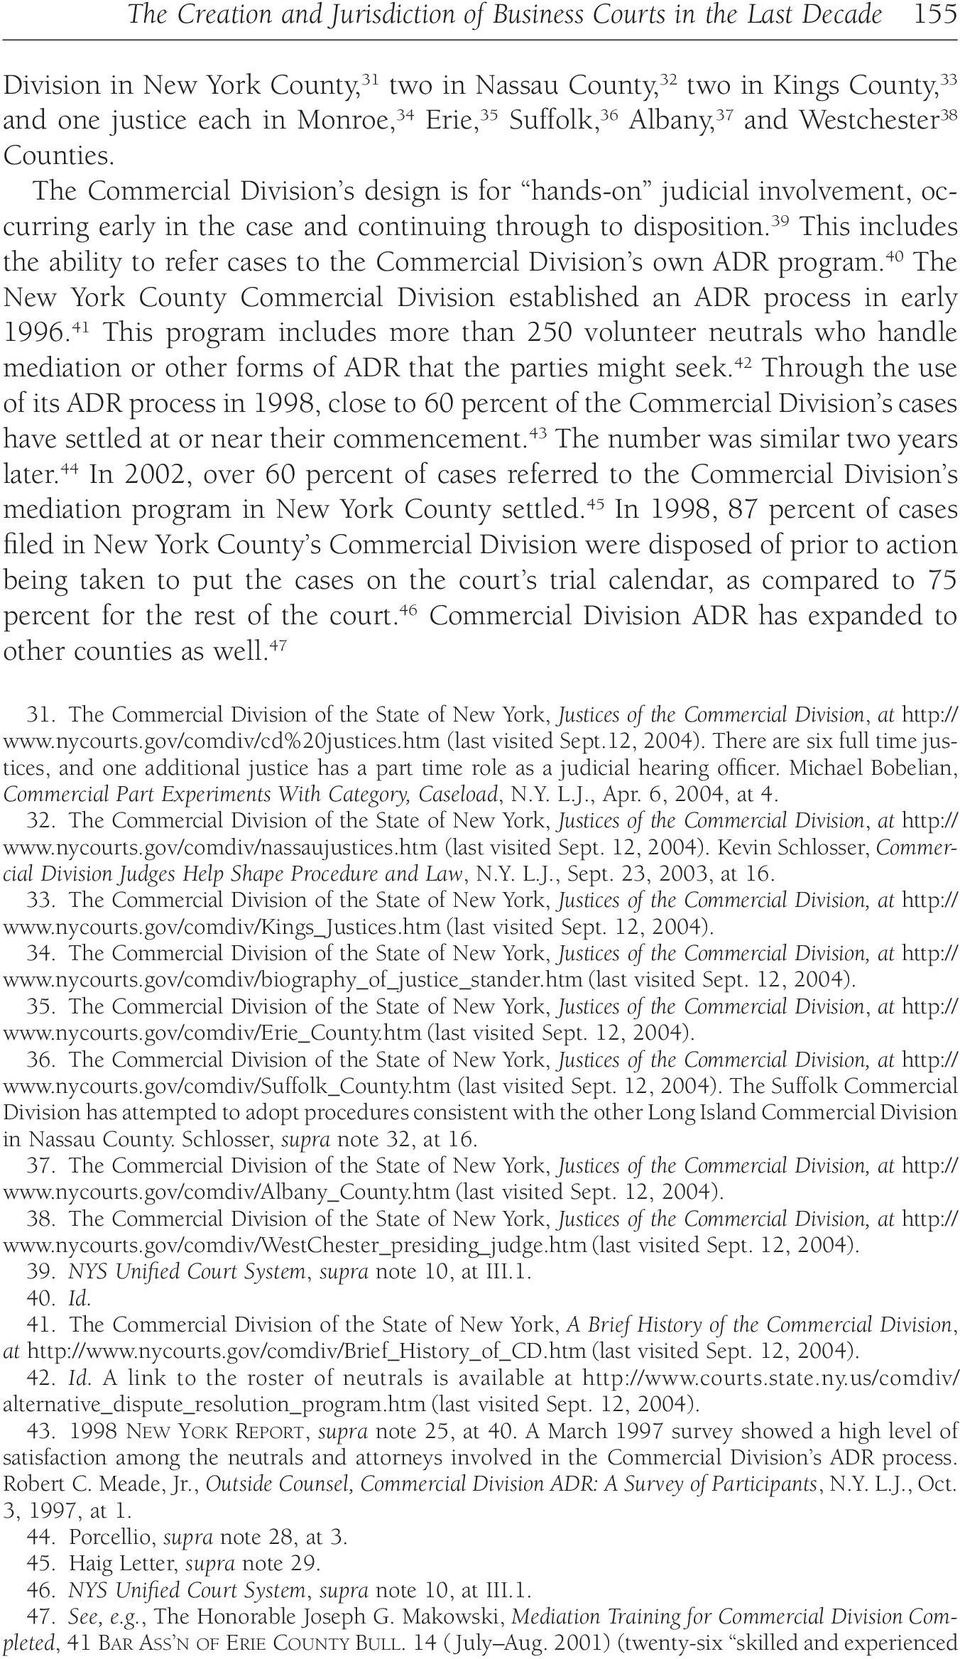 39 This includes the ability to refer cases to the Commercial Division s own ADR program. 40 The New York County Commercial Division established an ADR process in early 1996.